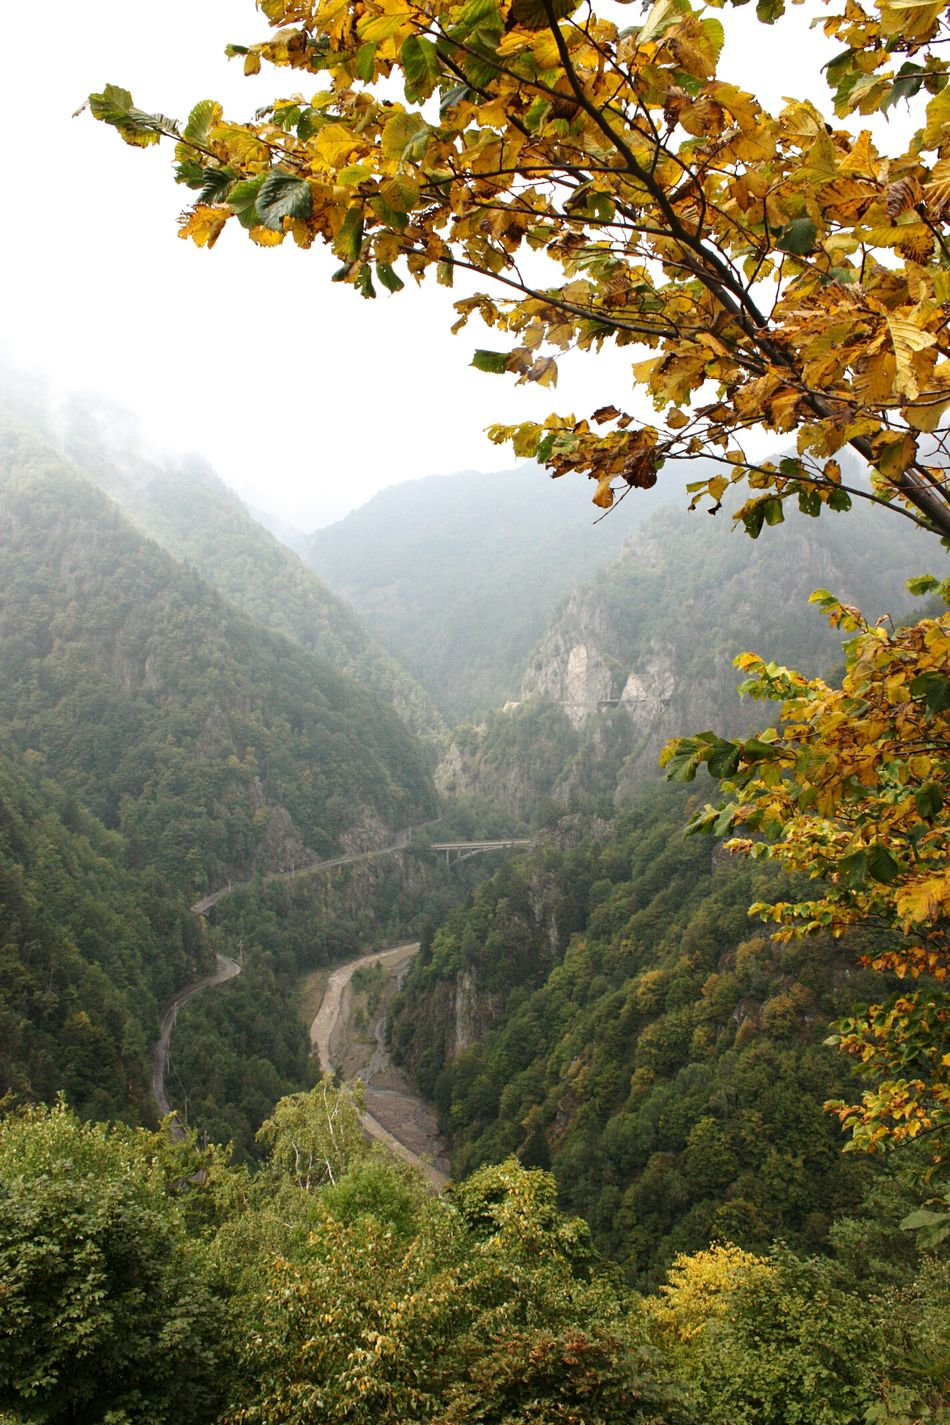 Beginning of autumn in Romania . Roads Mountain View Mountains EyeEm Best Shots - Nature Transfagarasan Pass Transfagaraşan EyeEm Nature Lover Autumn Edge Of The World